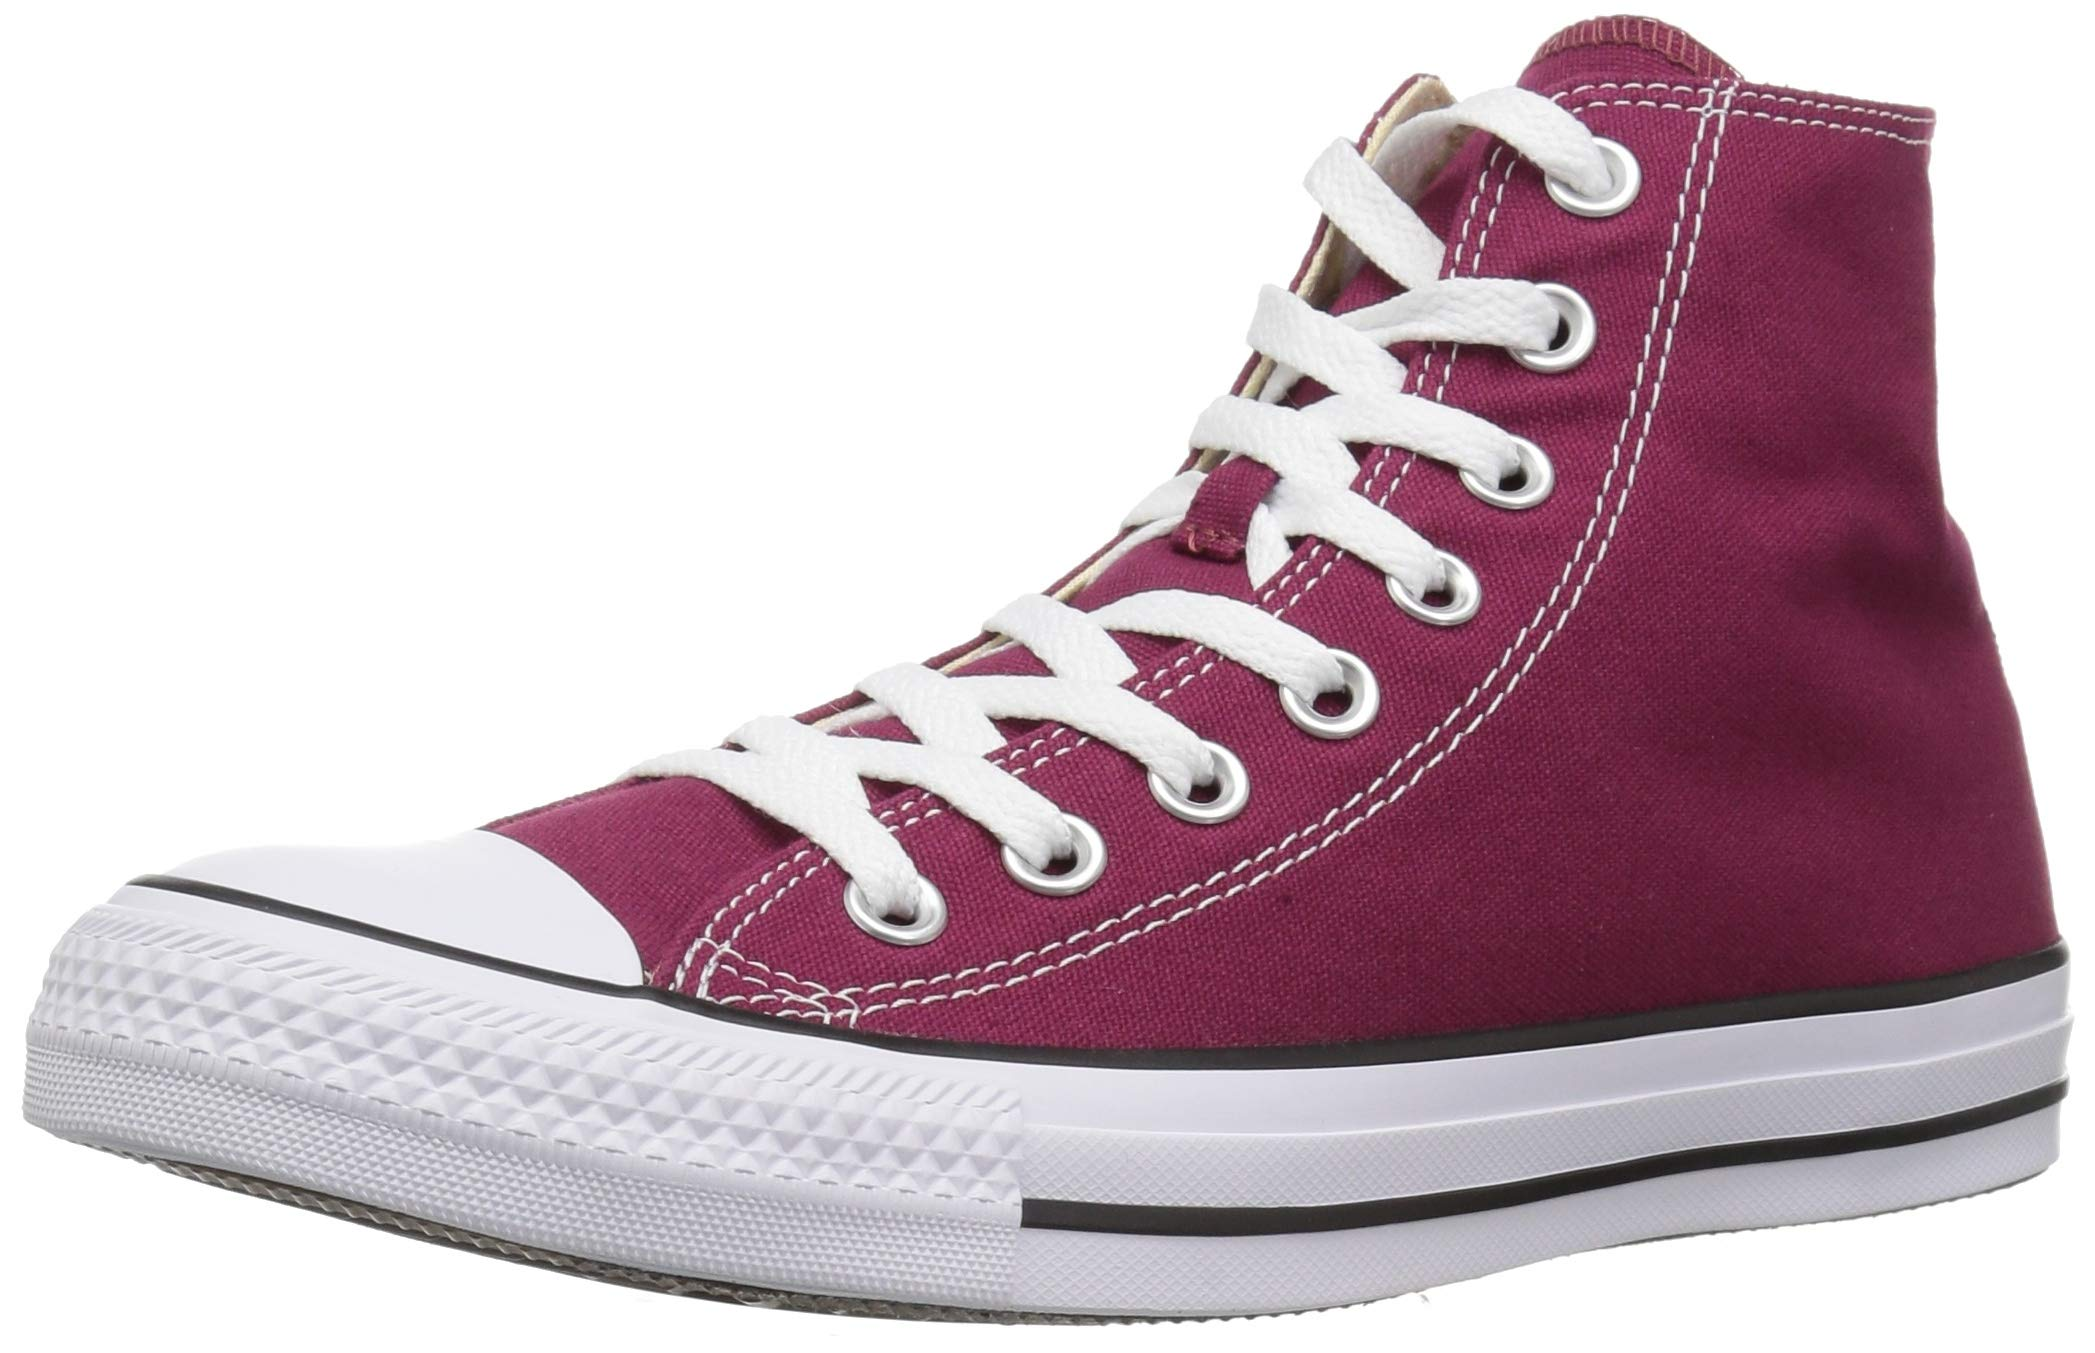 7a8326e099c1 Galleon - Converse Unisex Chuck Taylor All Star Hi-Top Shoes